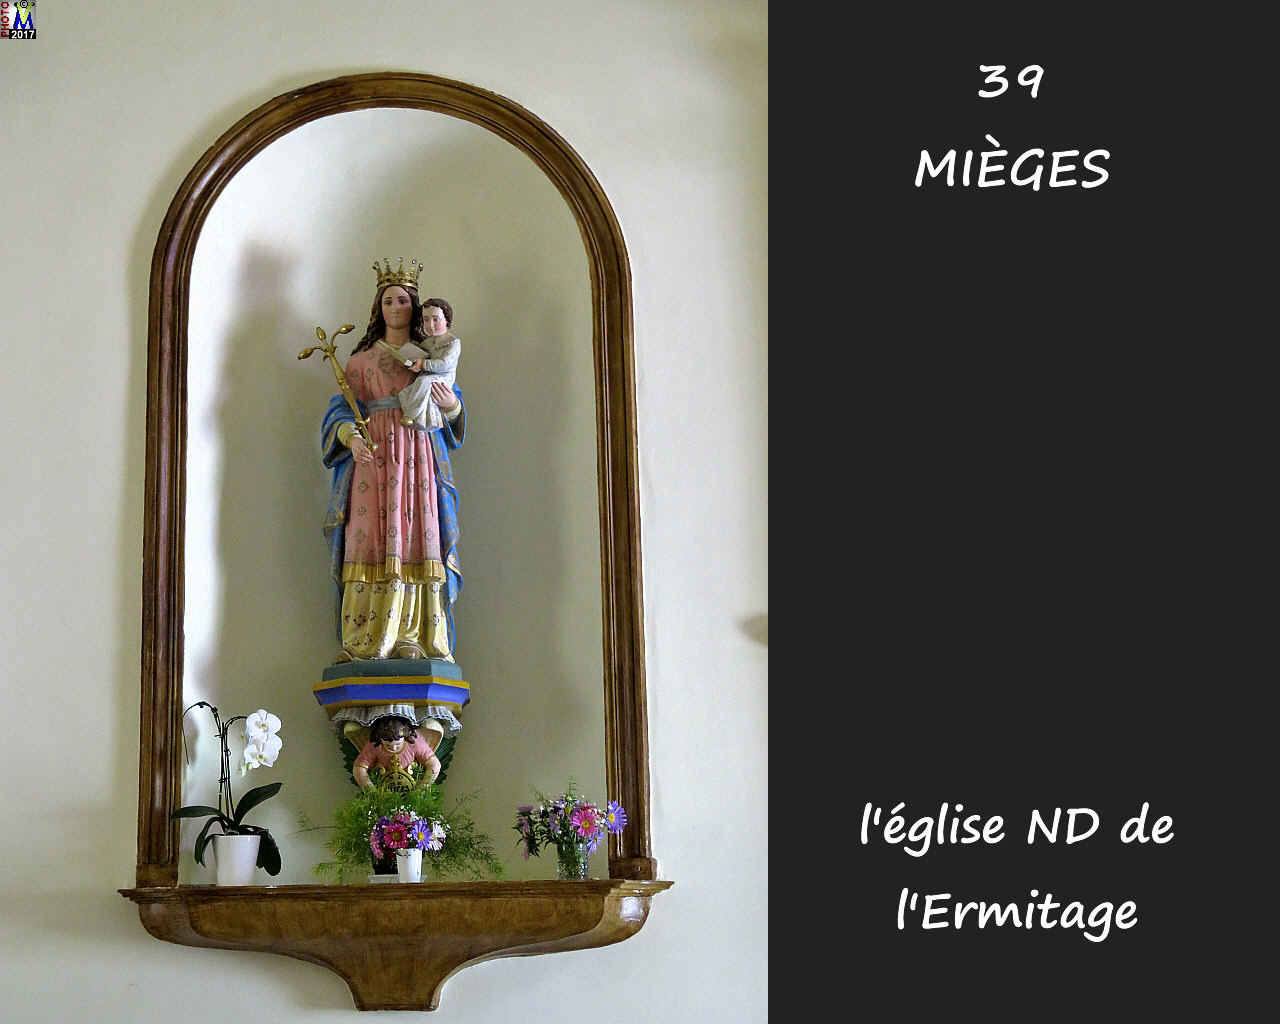 39MIEGES_Ermitage_130.jpg